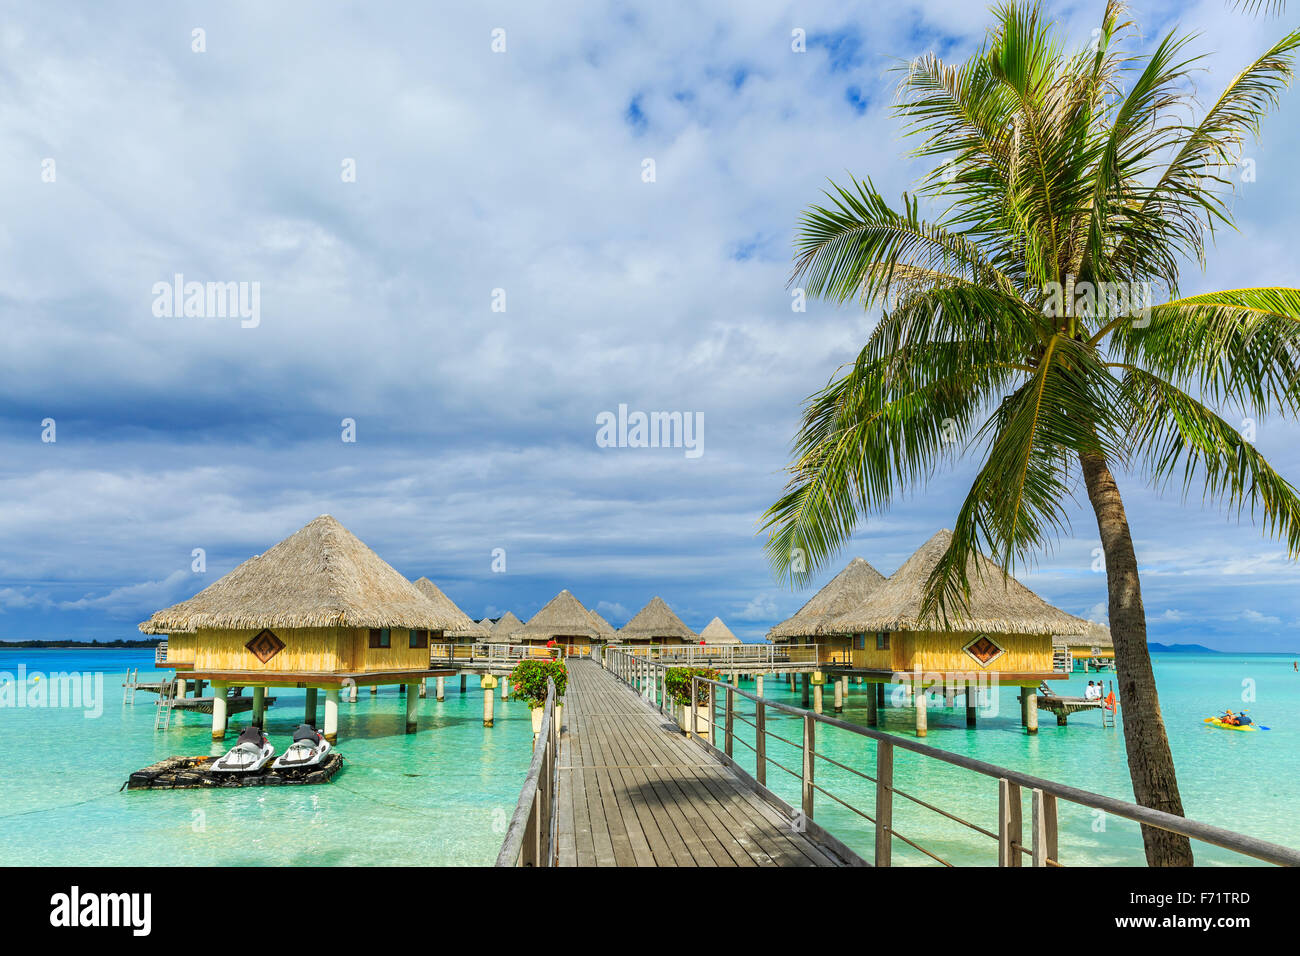 Overwater Bungalows Bora Bora island, French Polynesia Stock Photo